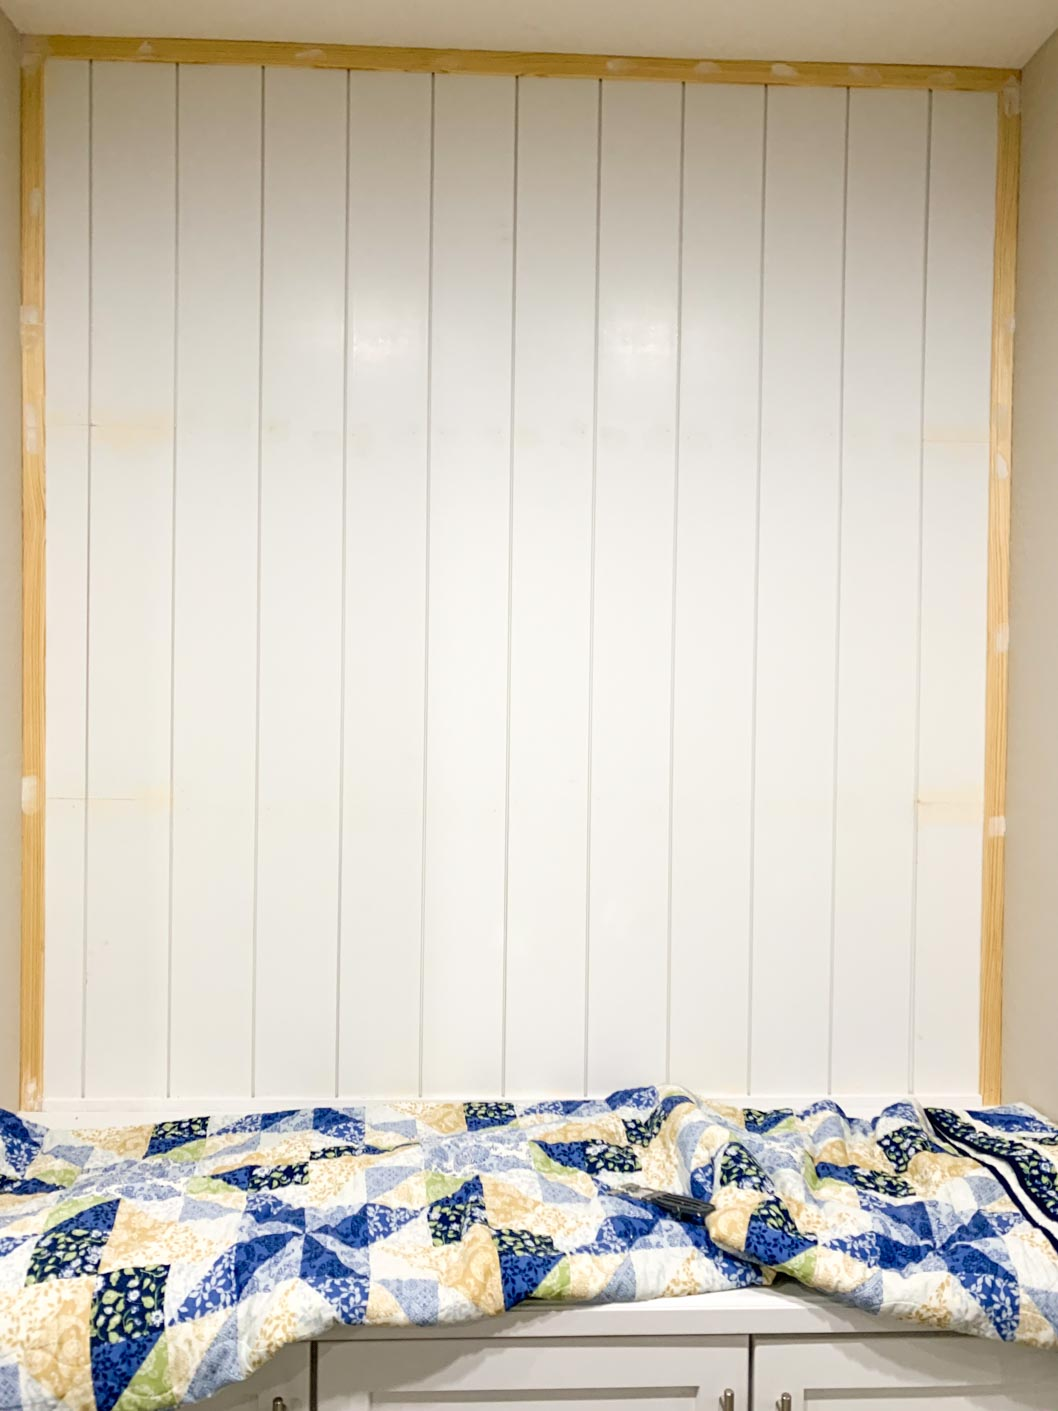 white vertical shiplap surrounded by a brown trim on all 4 sides.